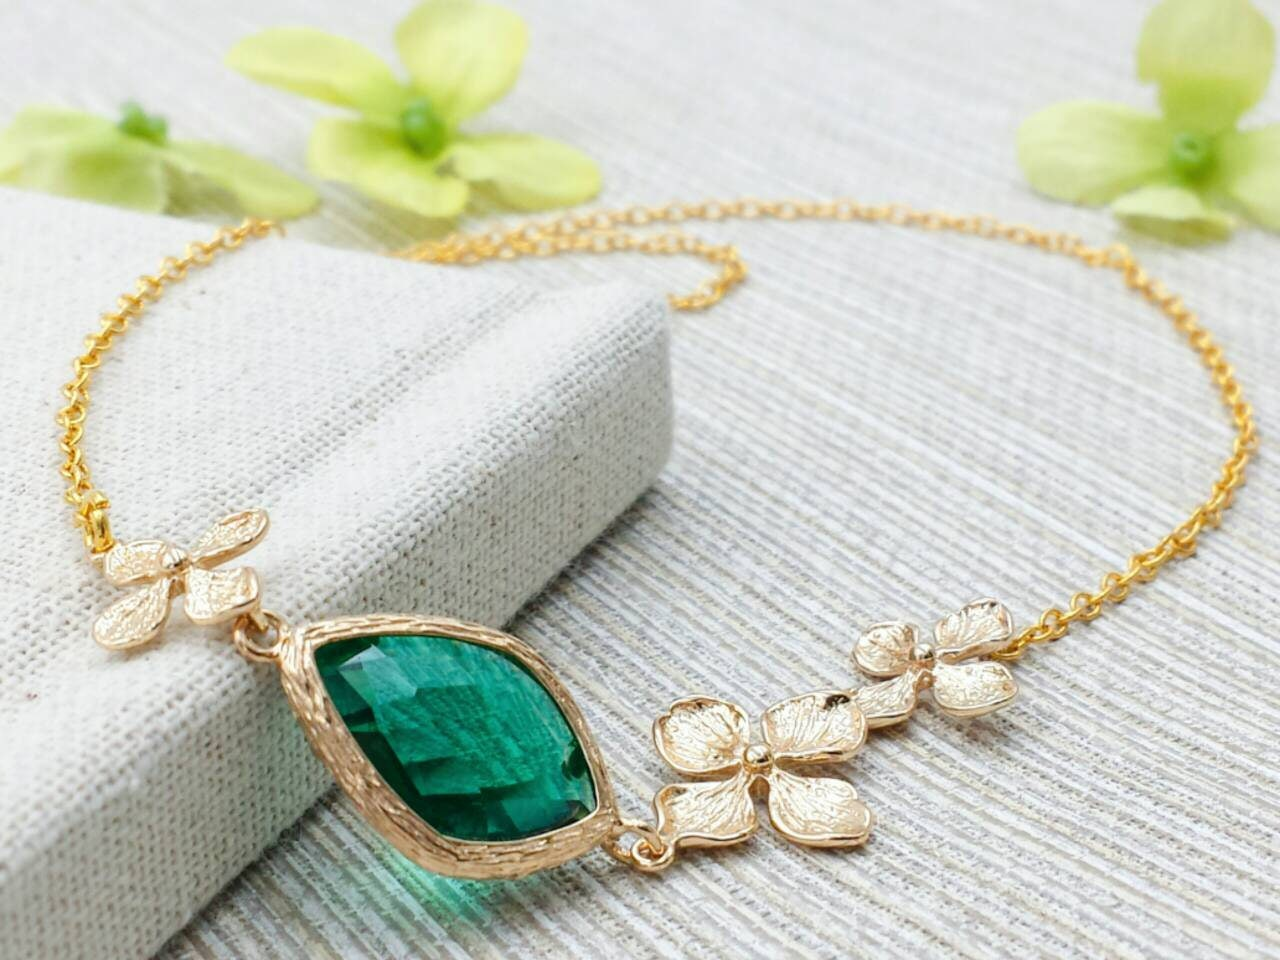 Green lucky shamrock necklace four leaf clover charm emerald green - Details This Is A Wonderful Nature Inspired Sweet And Beautiful Four Leaf Clover Necklace